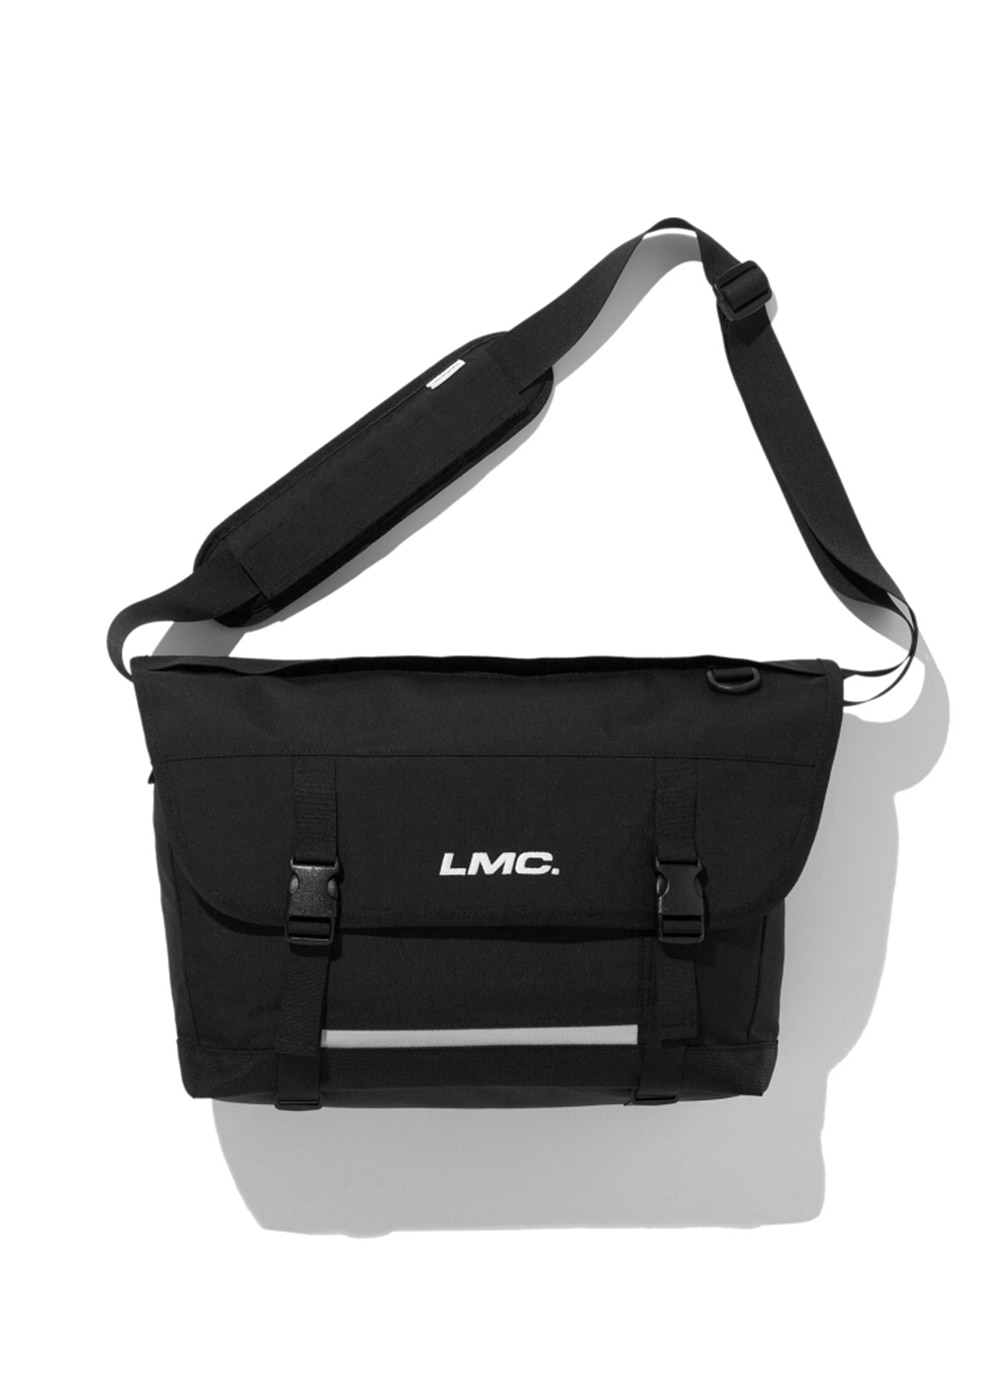 LMC SYSTEM UTILITY MESSENGER BAG black